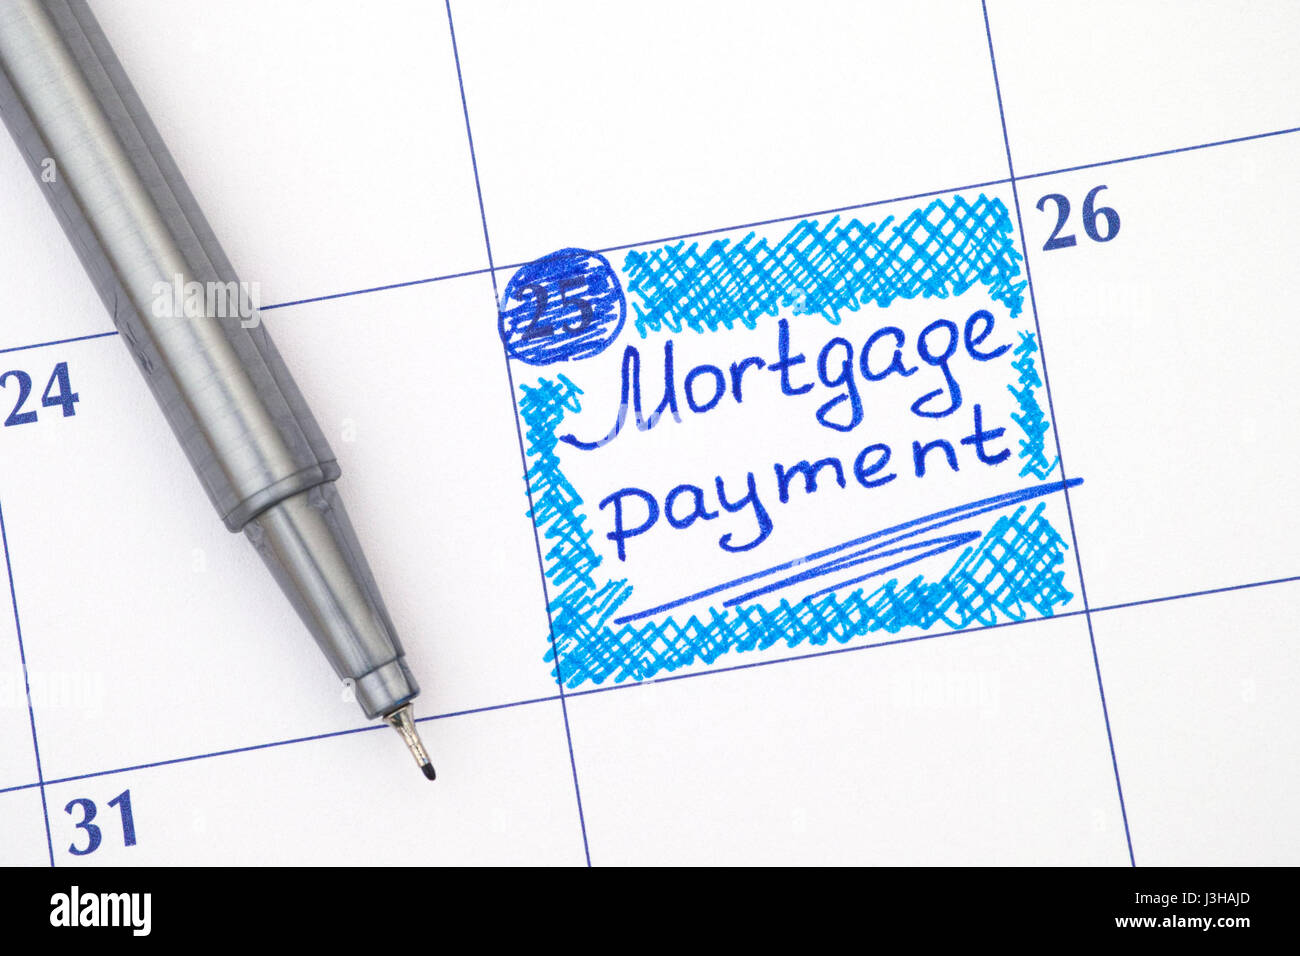 Reminder Mortgage Payment in calendar with blue pen. - Stock Image